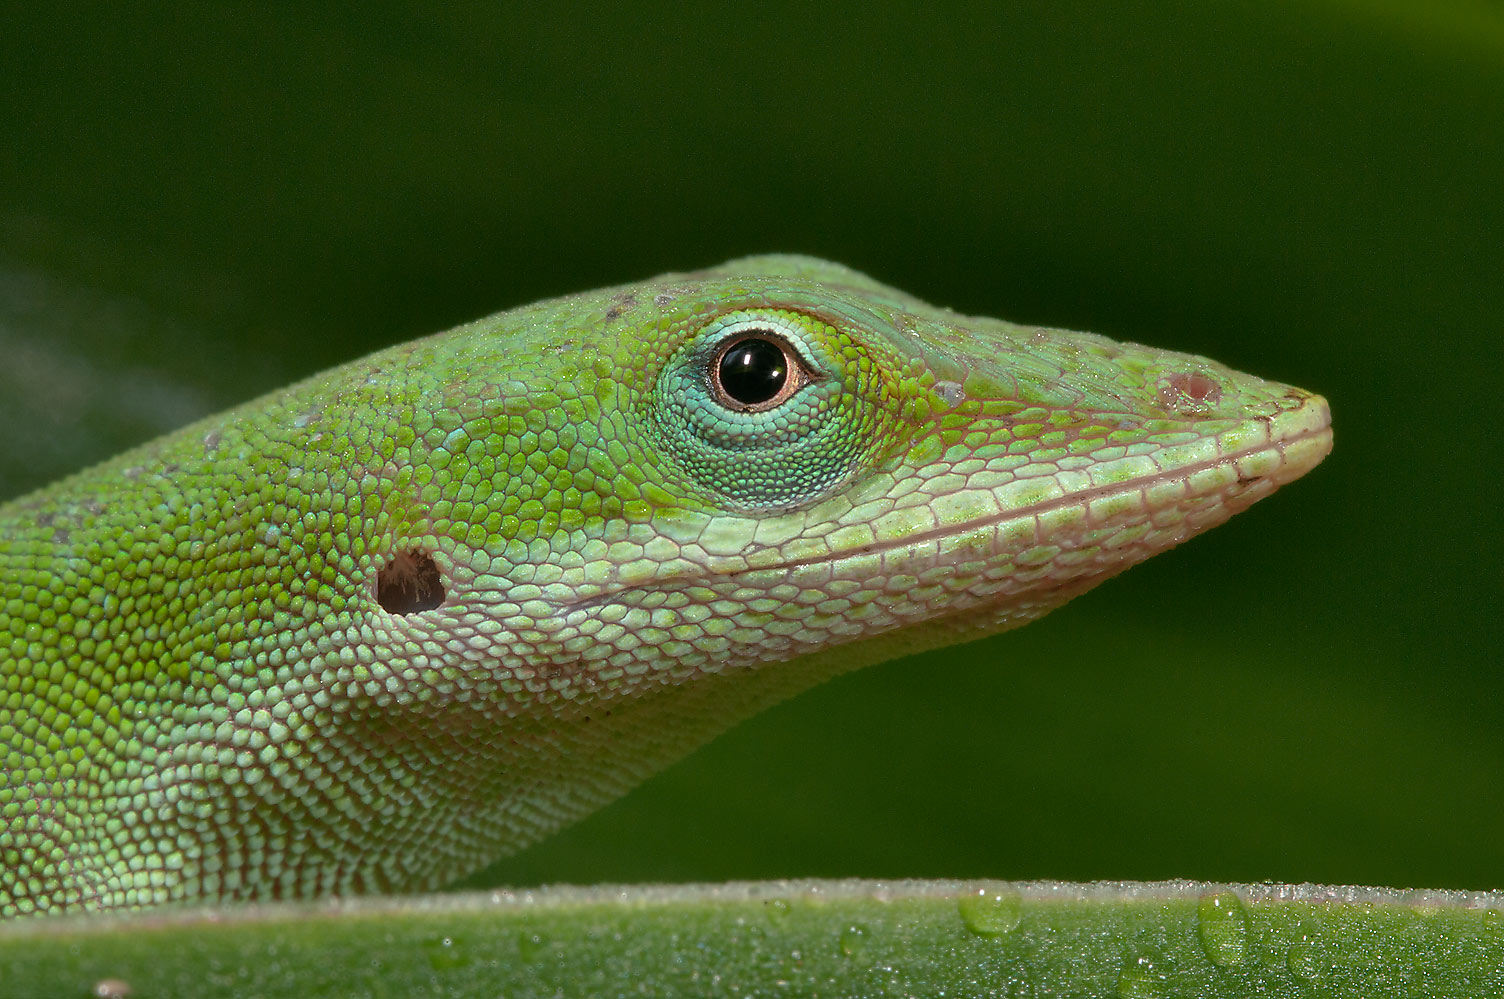 Green anole lizard in TAMU Holistic Garden in...M University. College Station, Texas